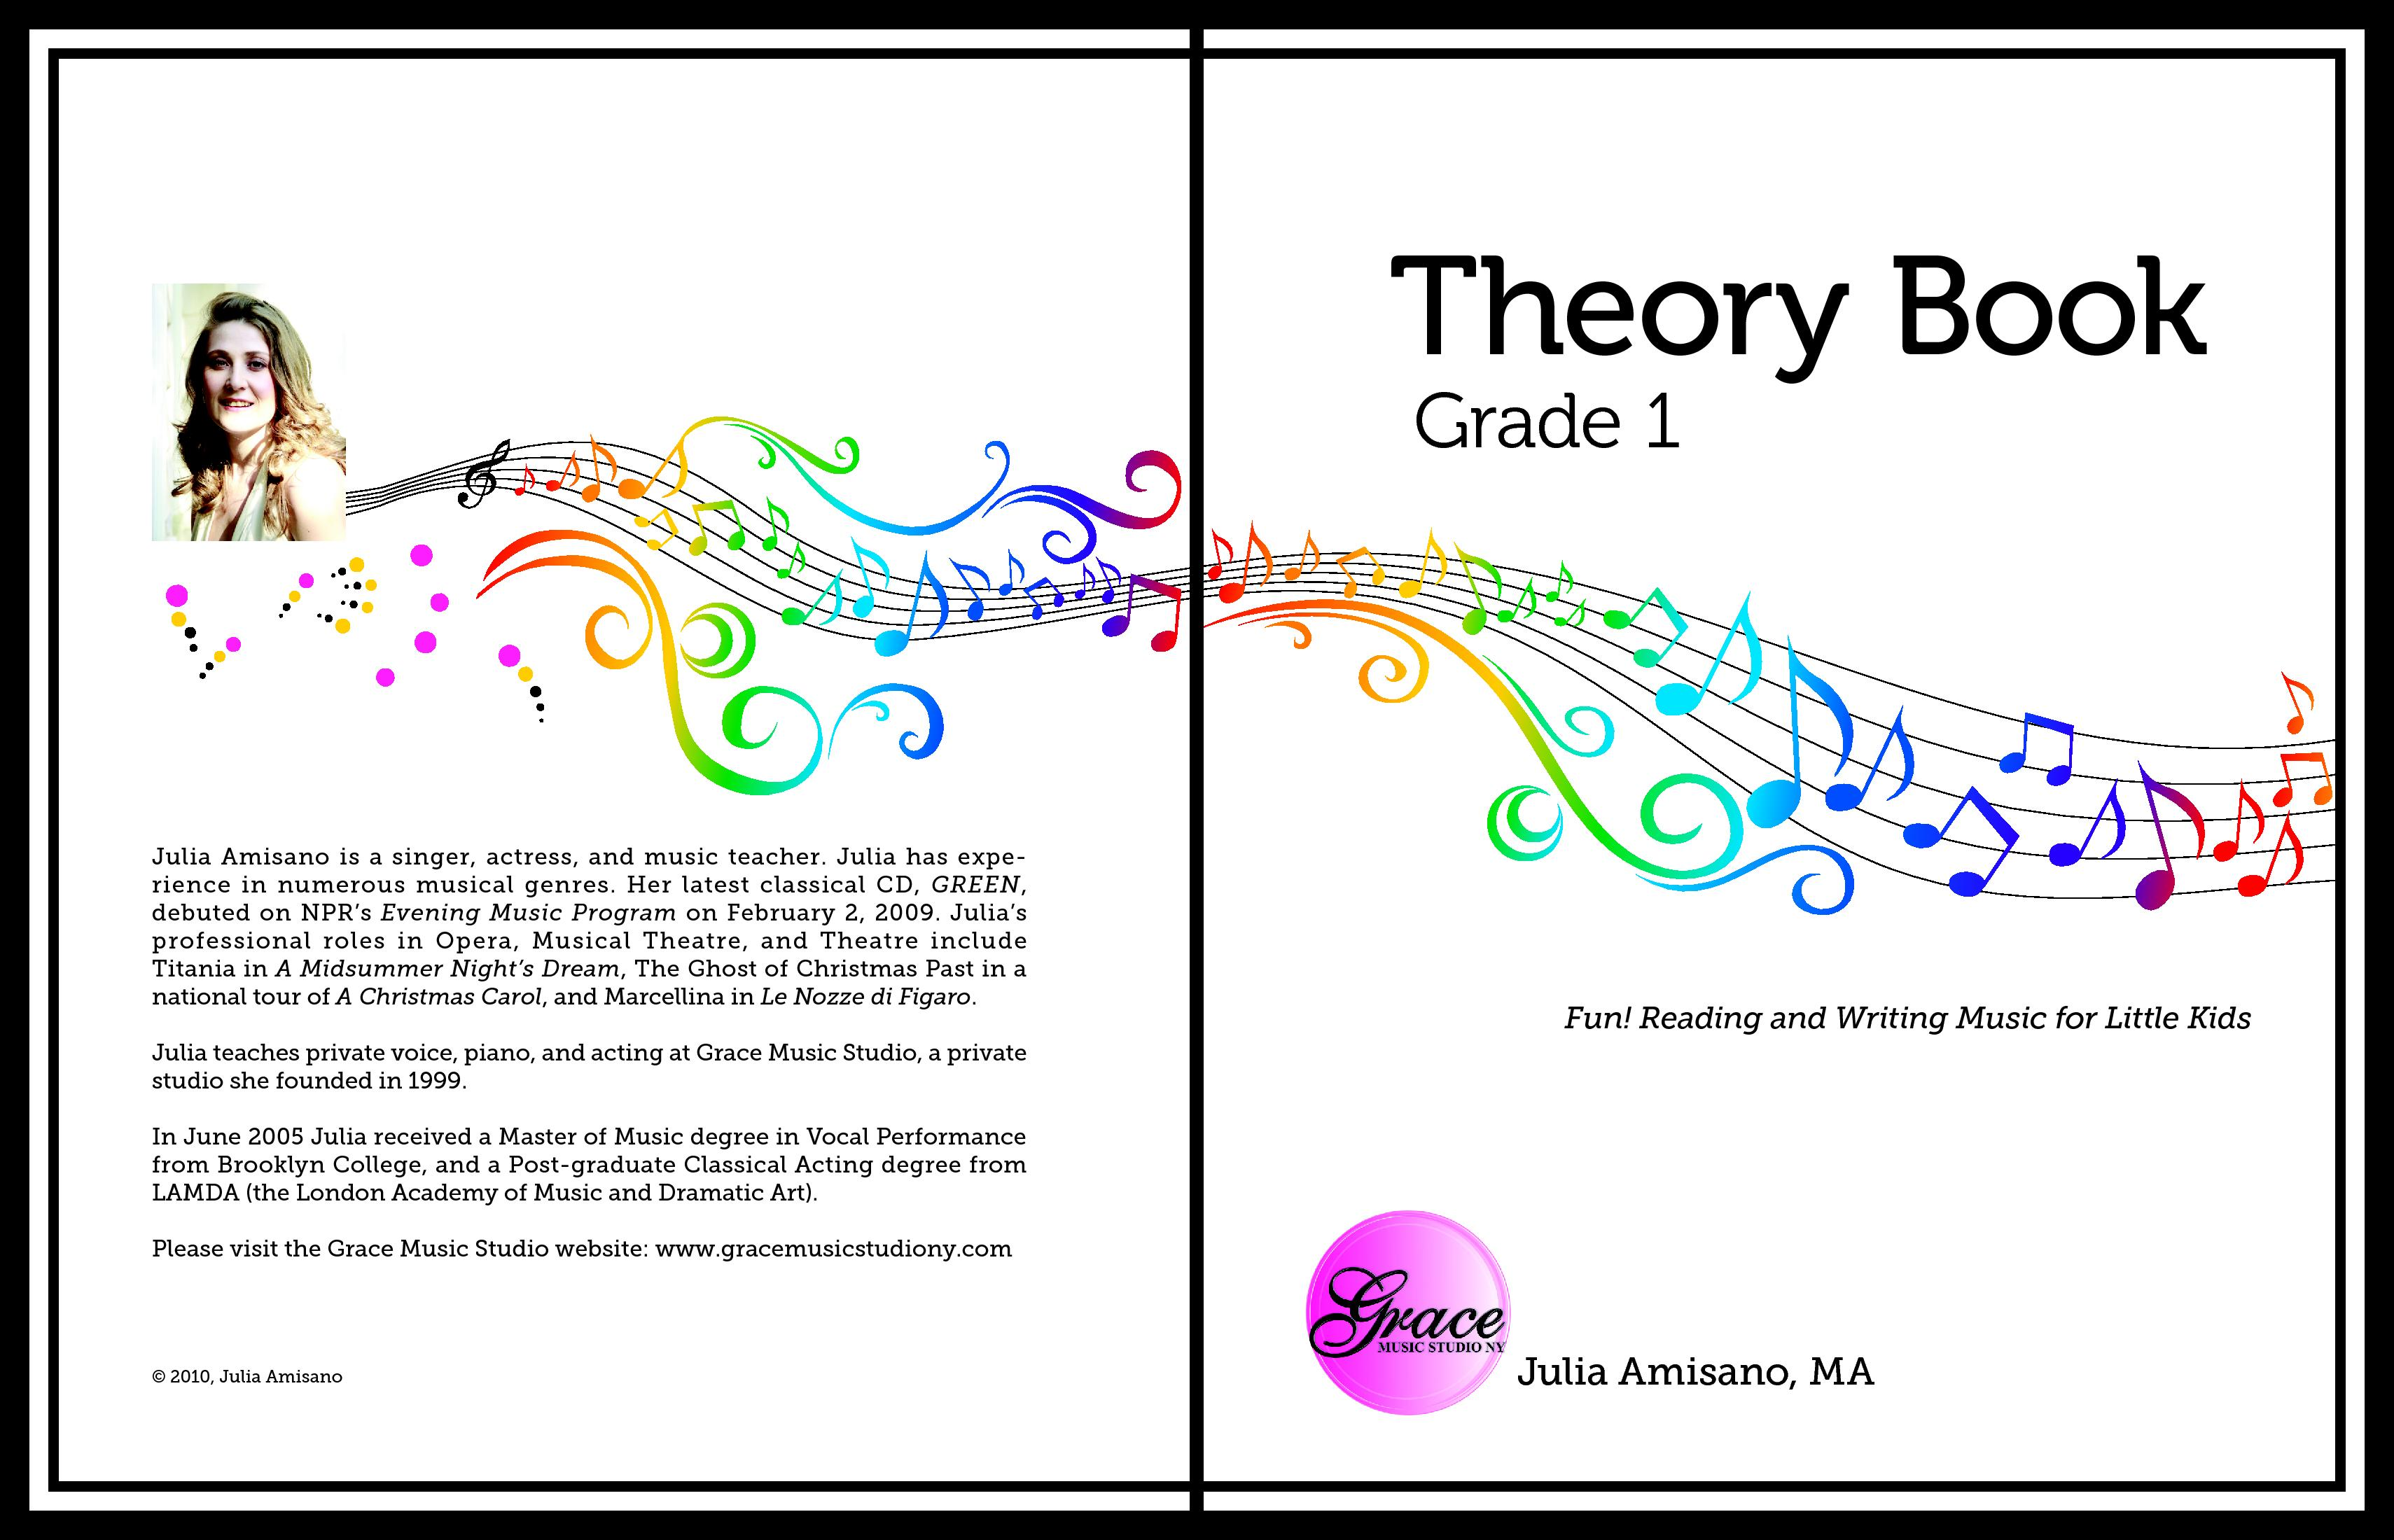 Music Theory Grade 1 by Julia Amisano